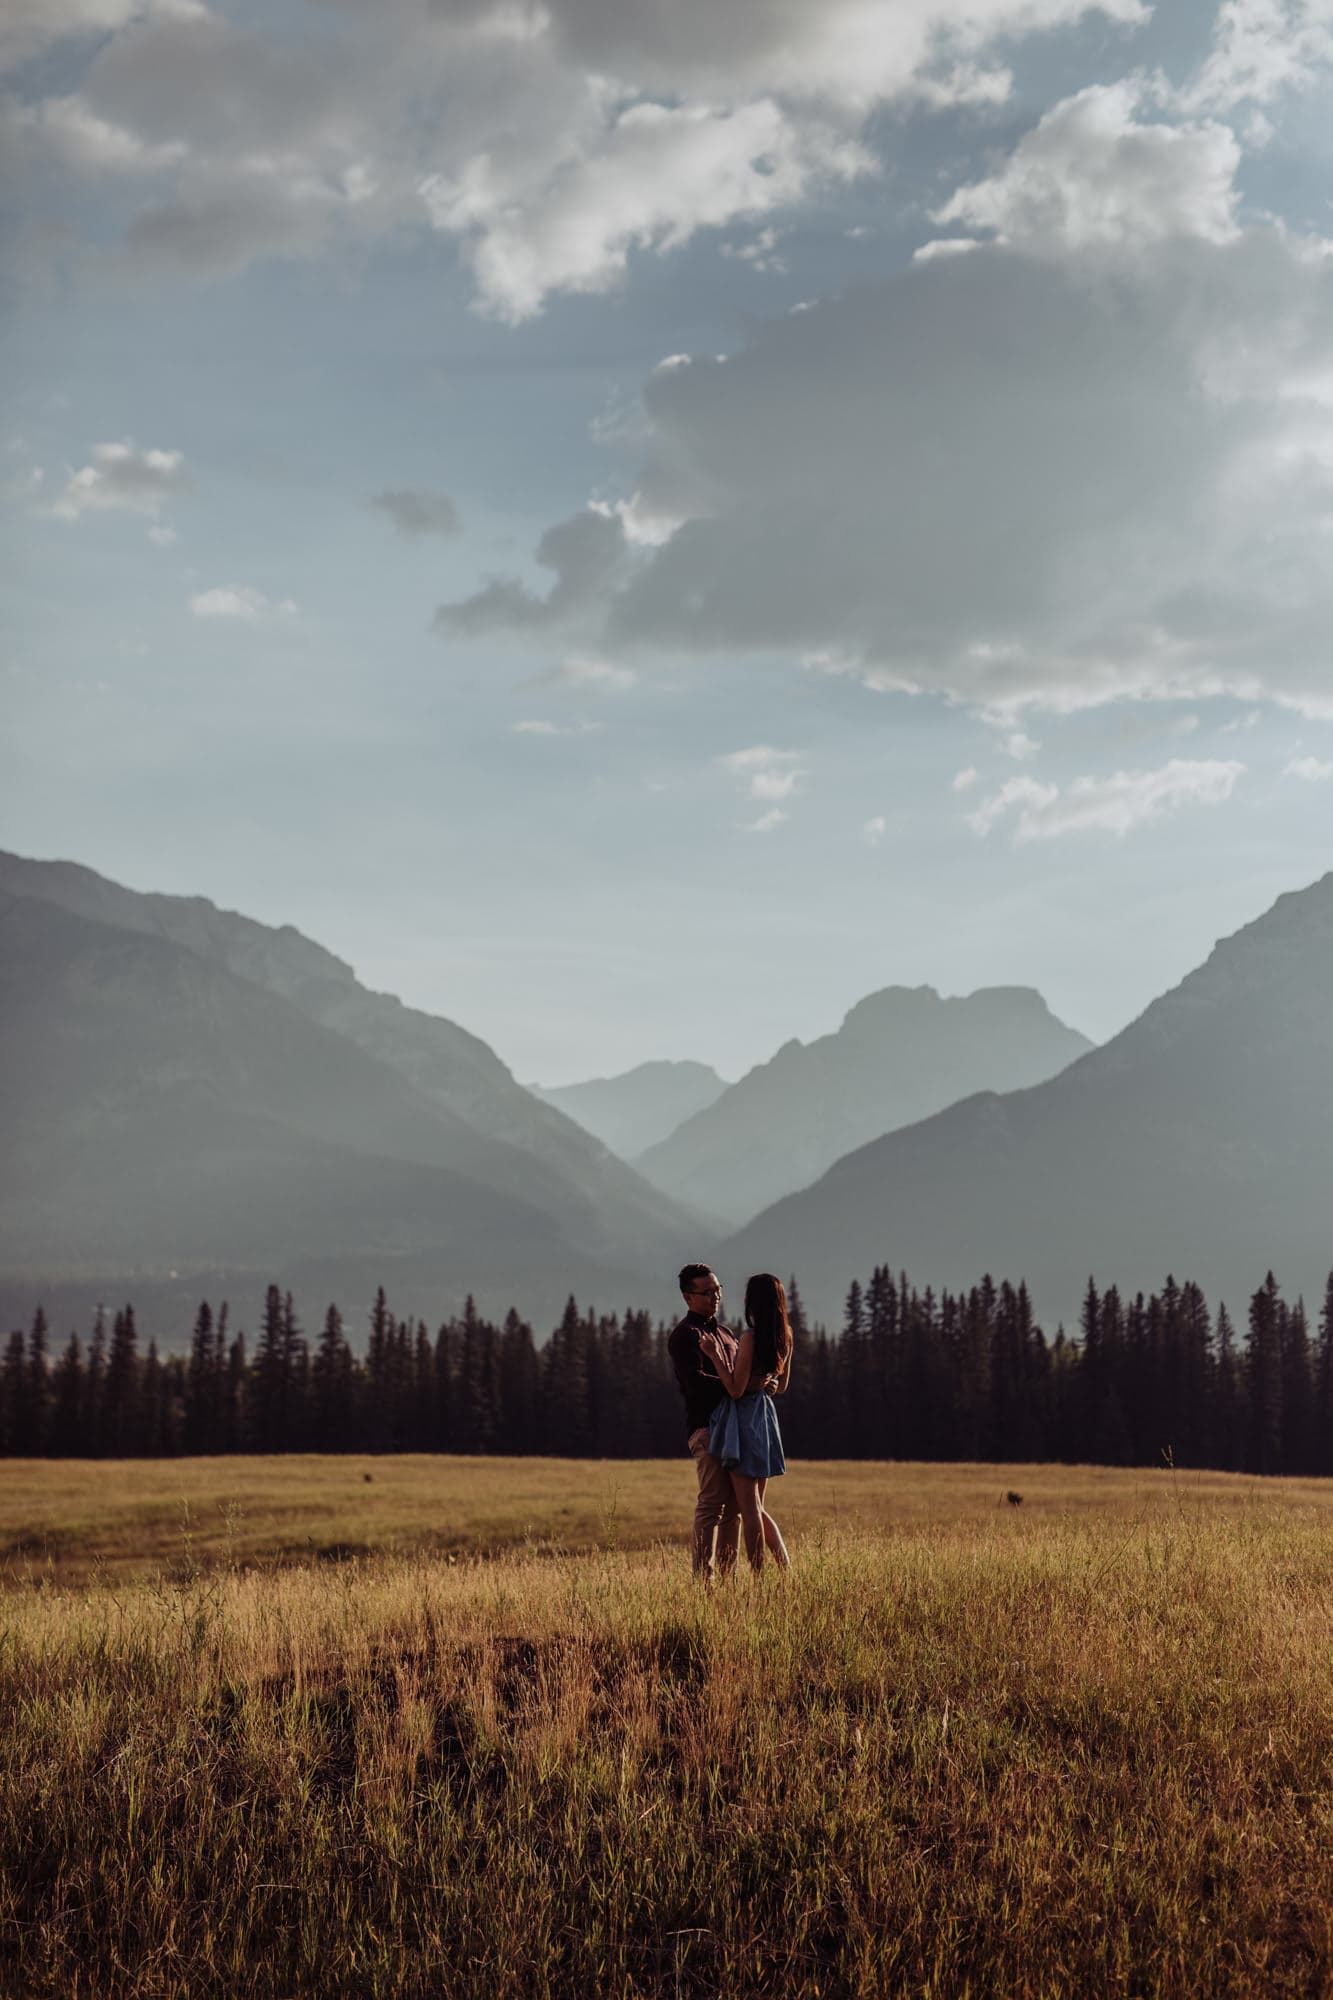 Banff Montreal Wedding Canmore Engagement Banff Montreal Traveling Destination Photographer Brent Calis Field Mountains